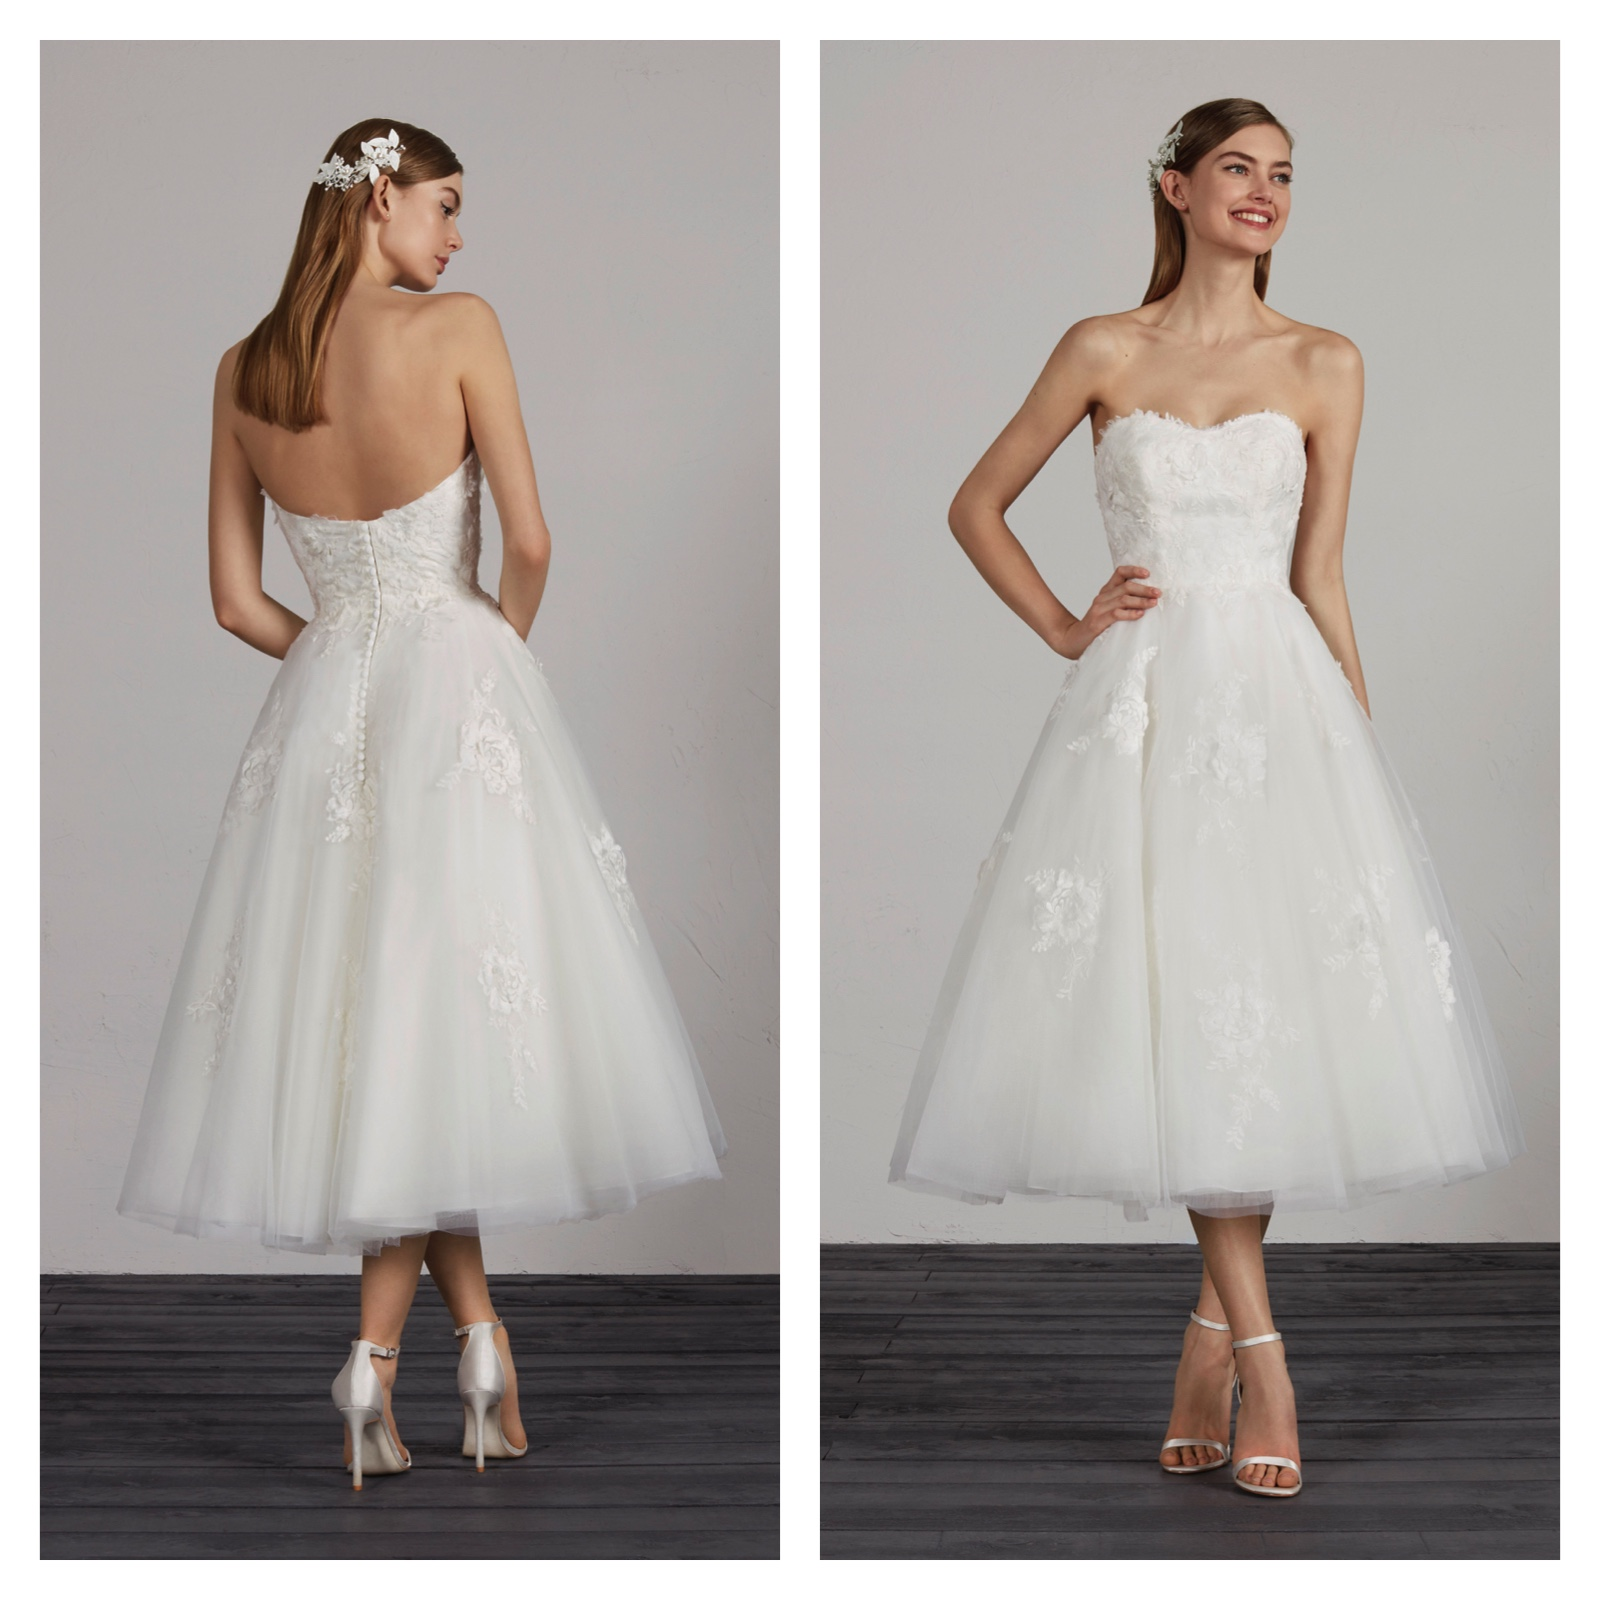 The Perfect Wedding Gown: The Perfect White Wedding Dress